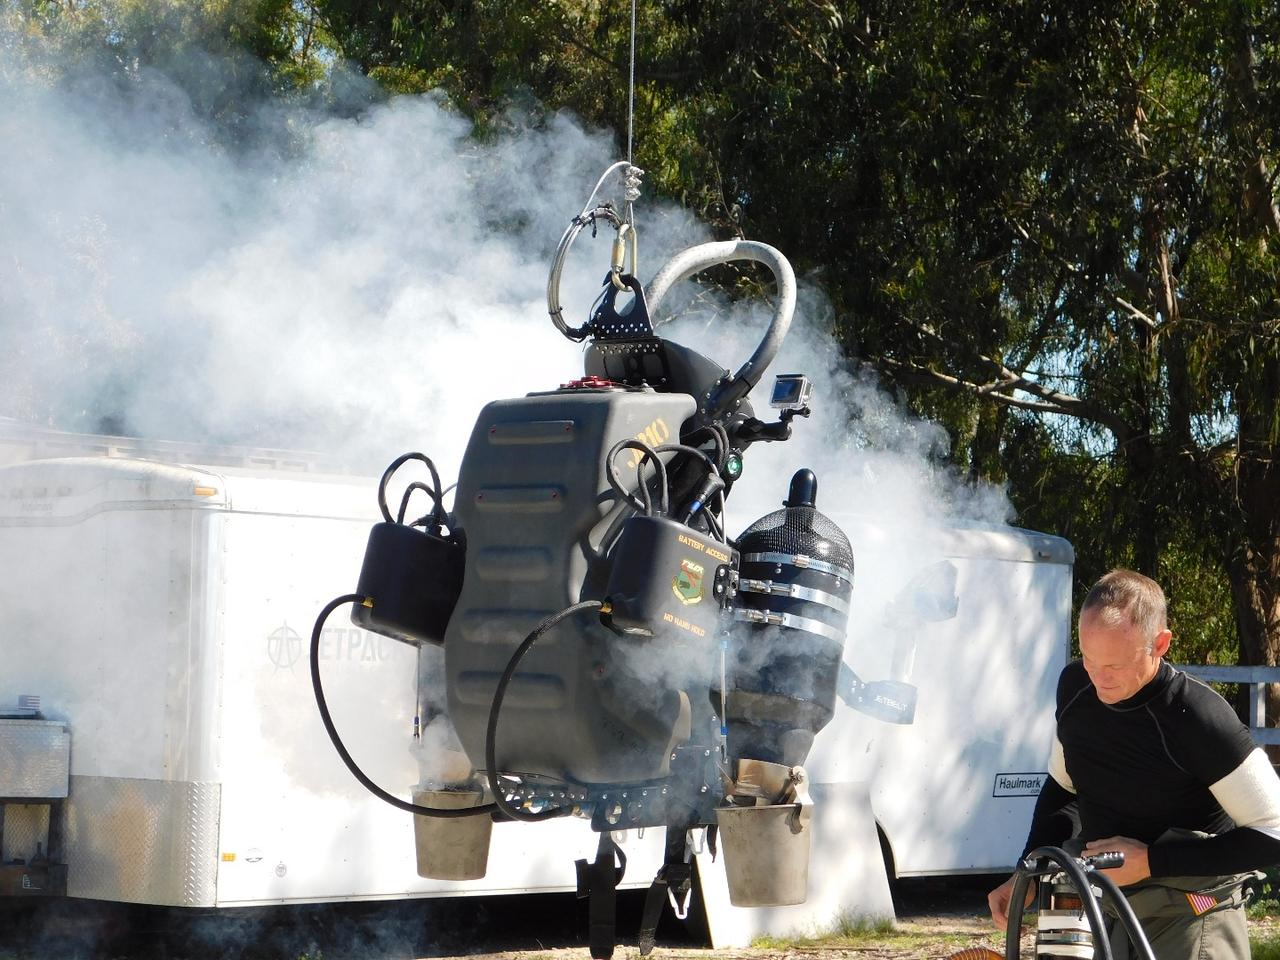 The JB-10 Jetpack from Jetpack Aviation in cool down mode following a demonstration flight